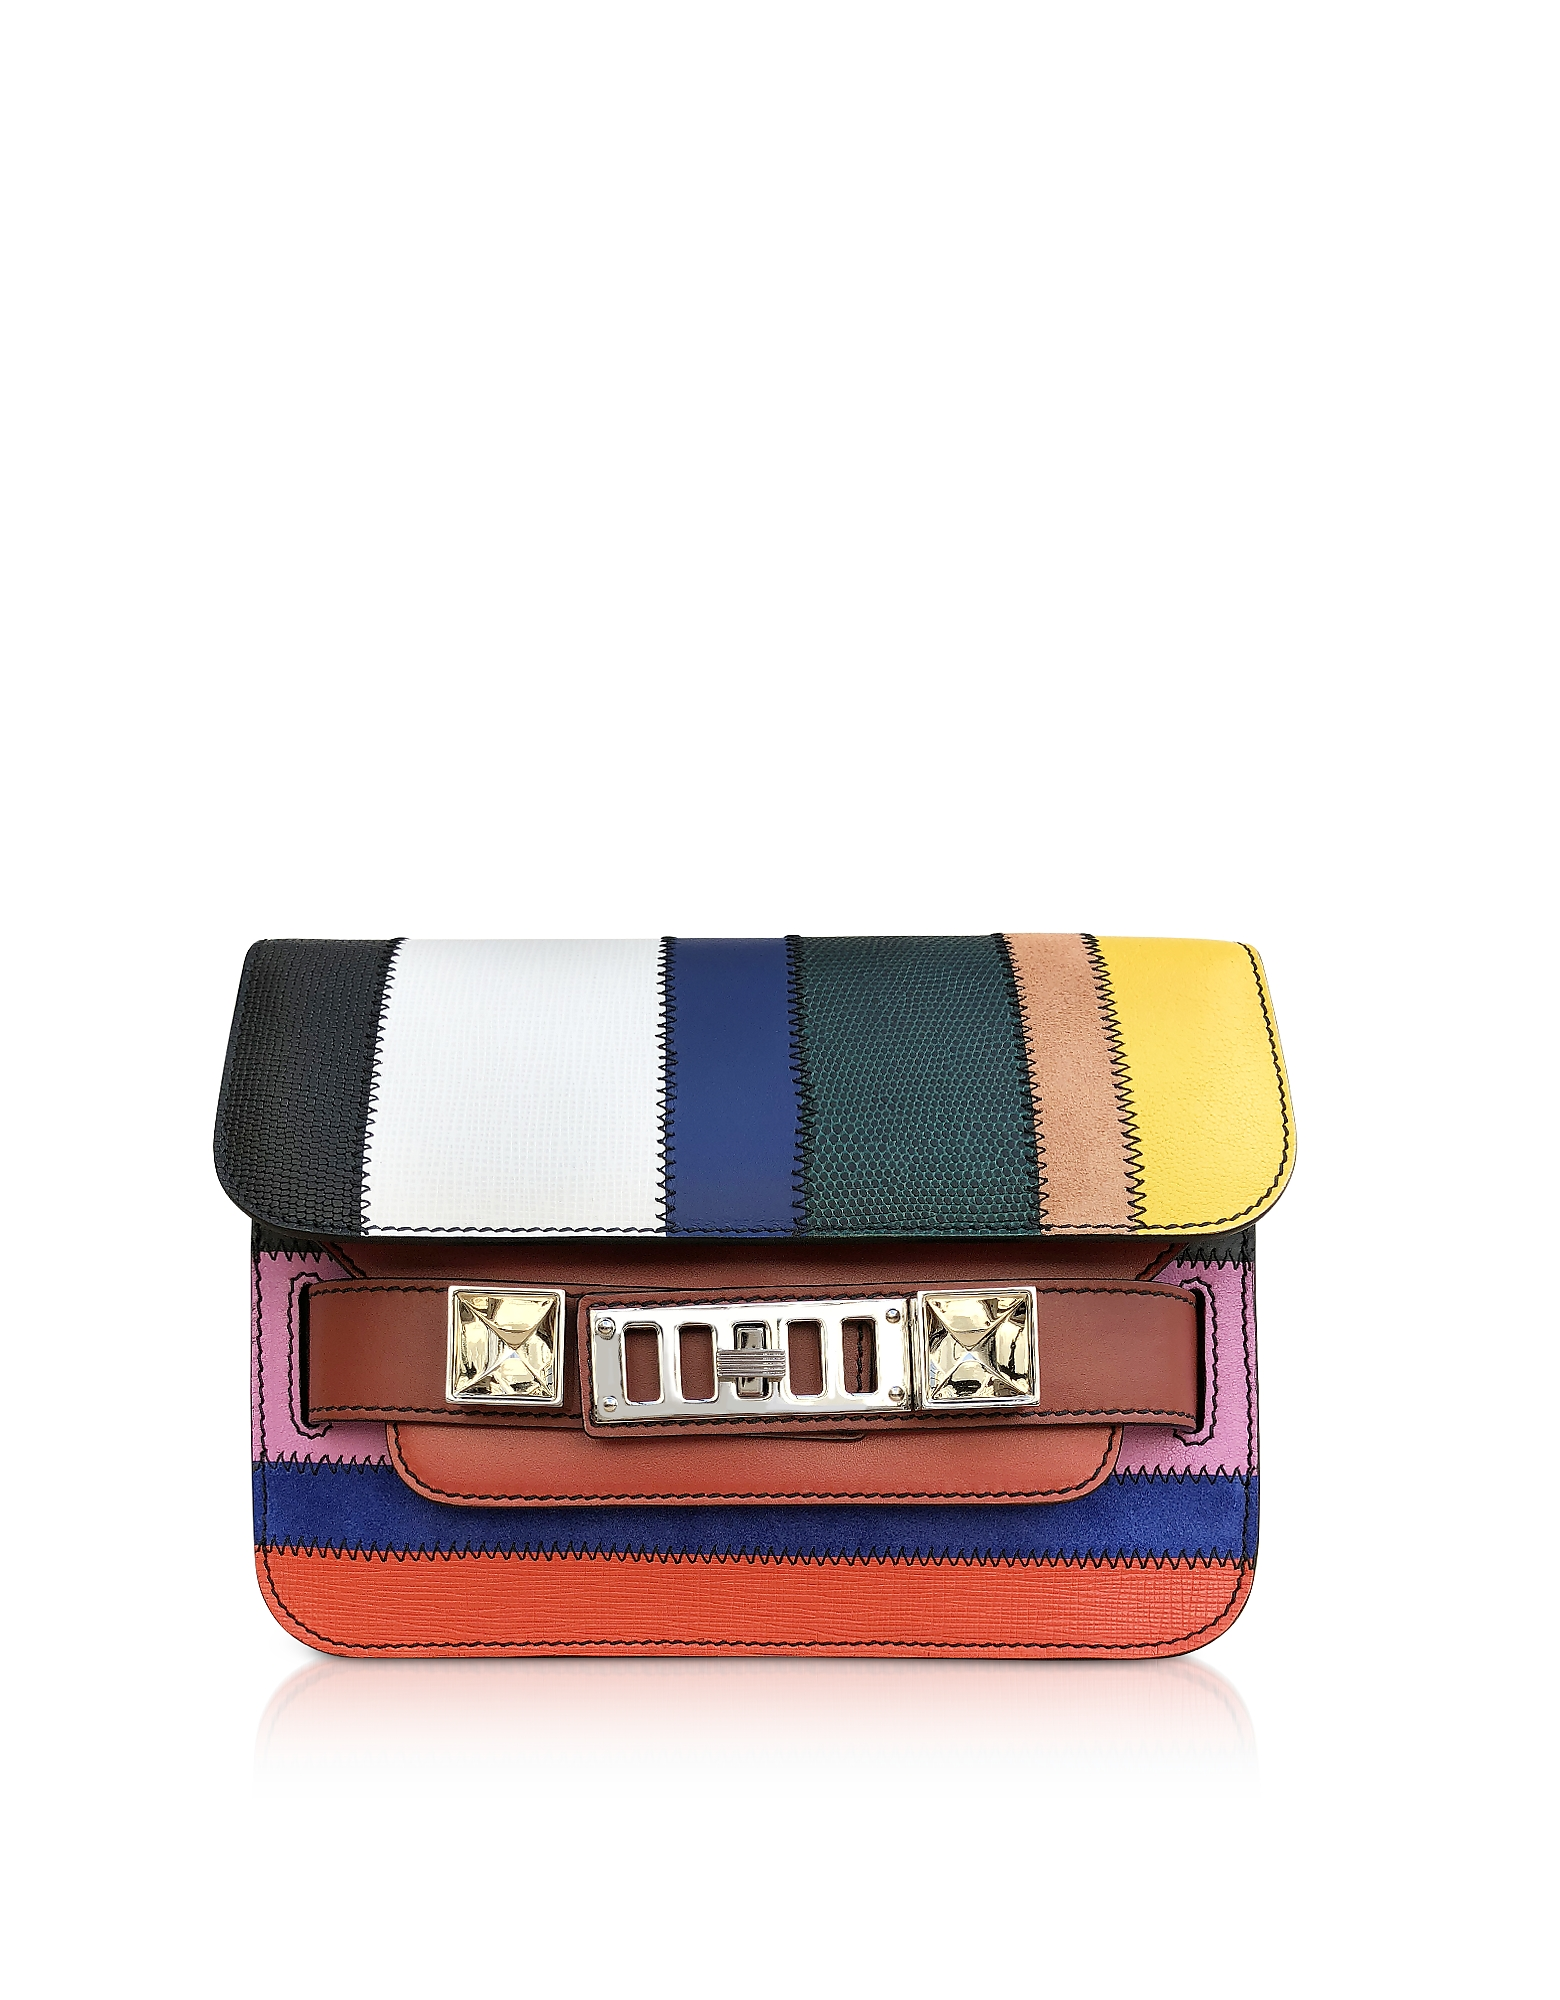 Proenza Schouler Handbags, Ps11 Mini Classic-ColorfuL Patchwork Shoulder Bag